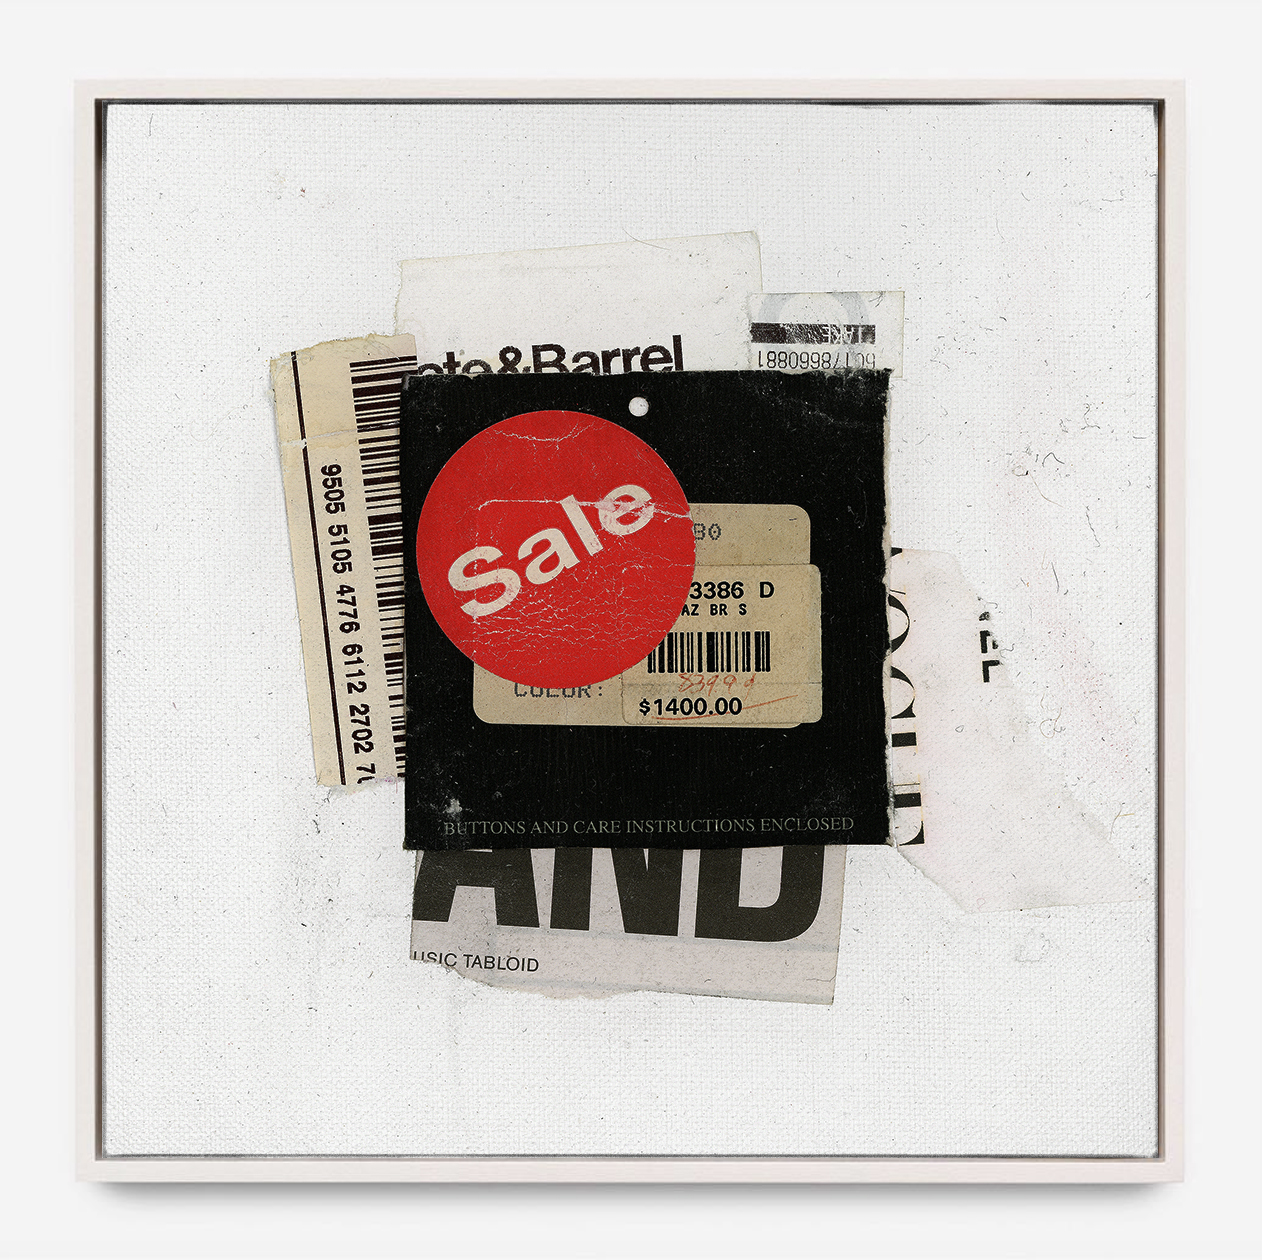 SALE  (2018) Mixed Media on Wood Panel 40 x 40 inches One of a Kind $ 1,500.00